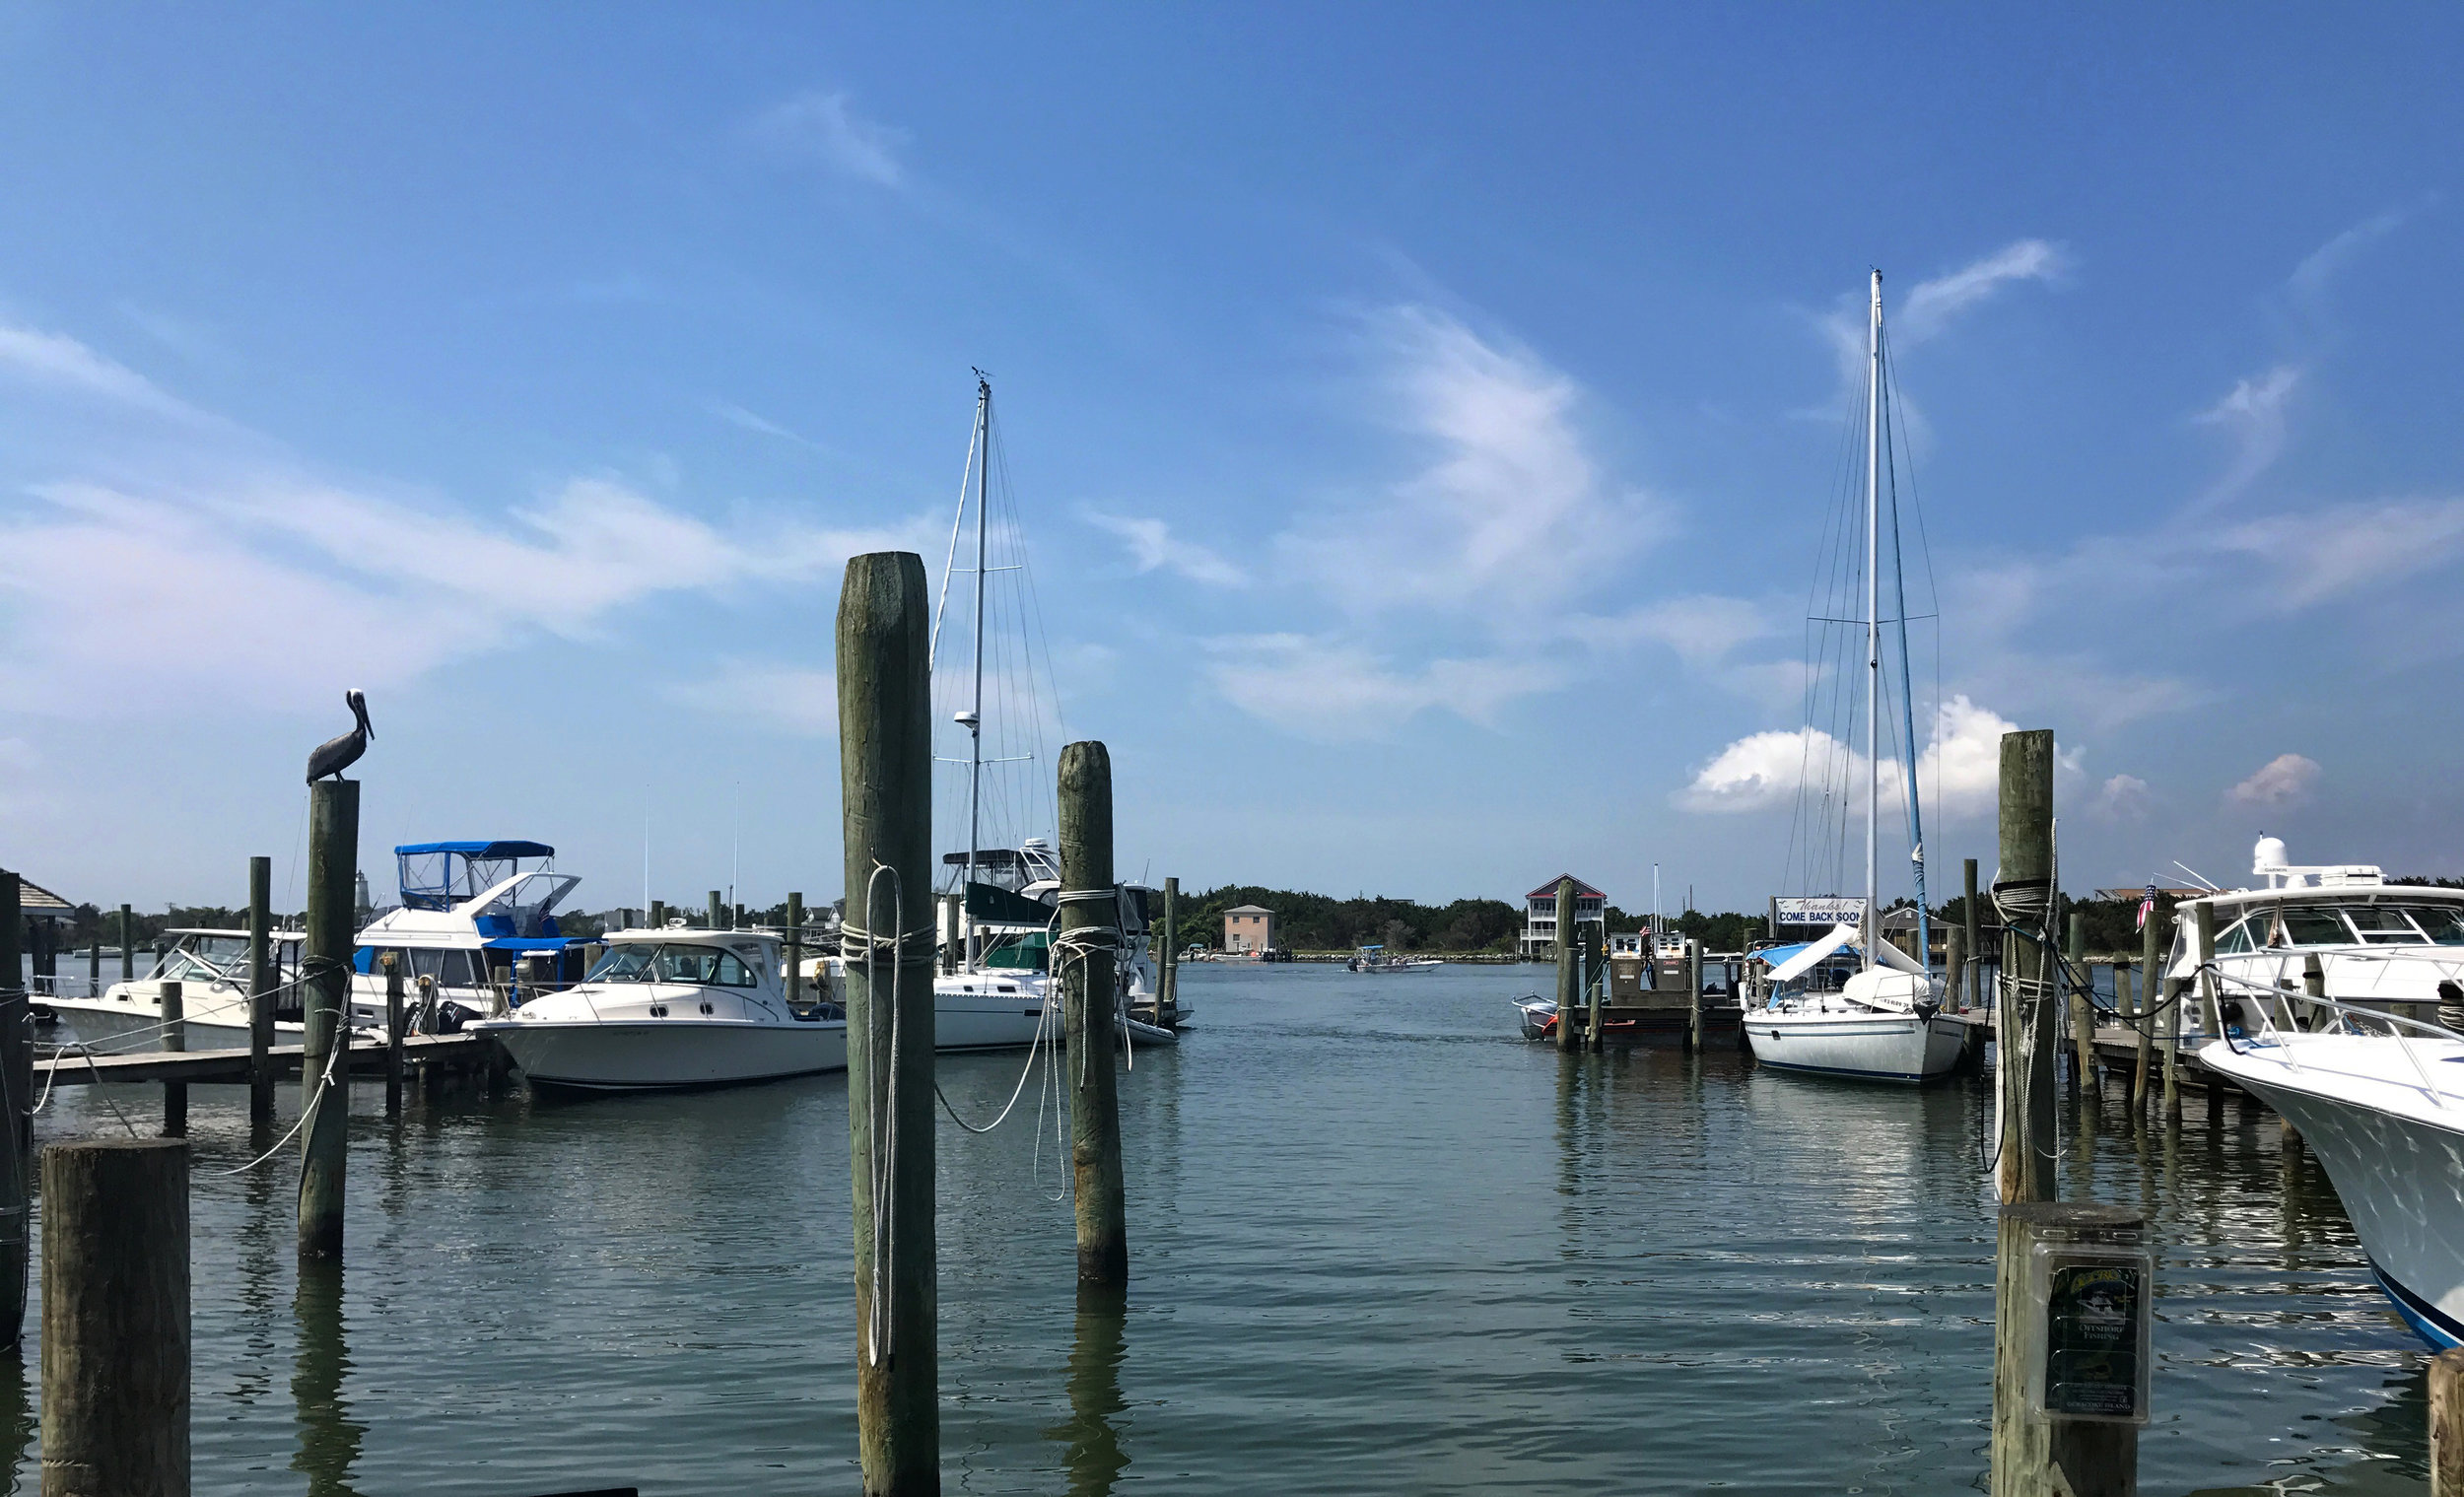 My lunchtime view of Silver Lake Harbor in Ocracoke Village